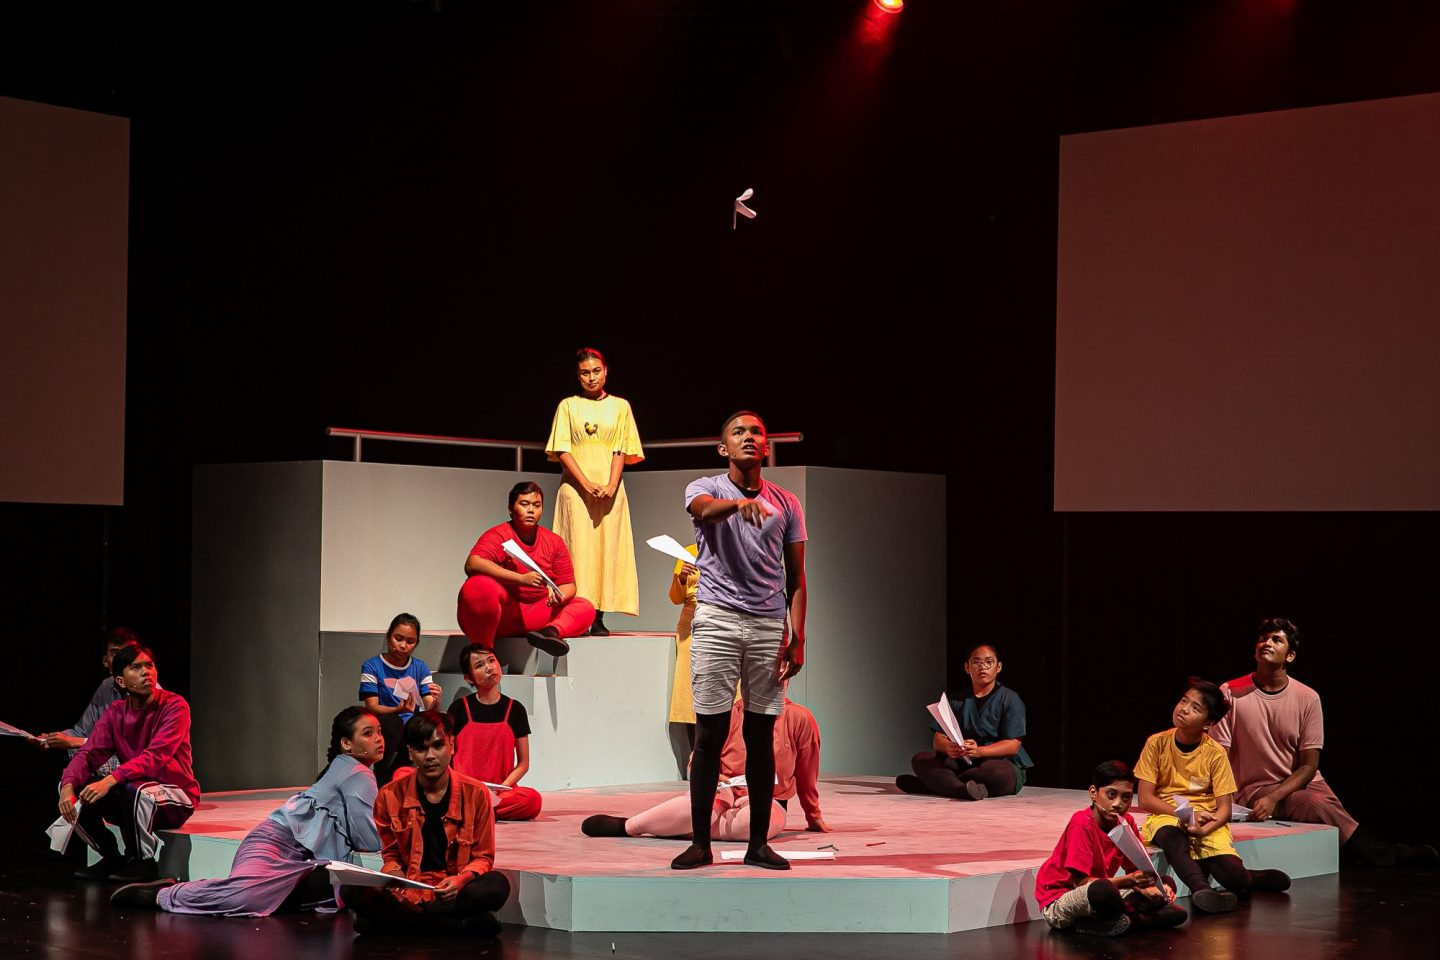 Beyond Social Services Entertains And Engages Marginalised Youths With The Community Theatre